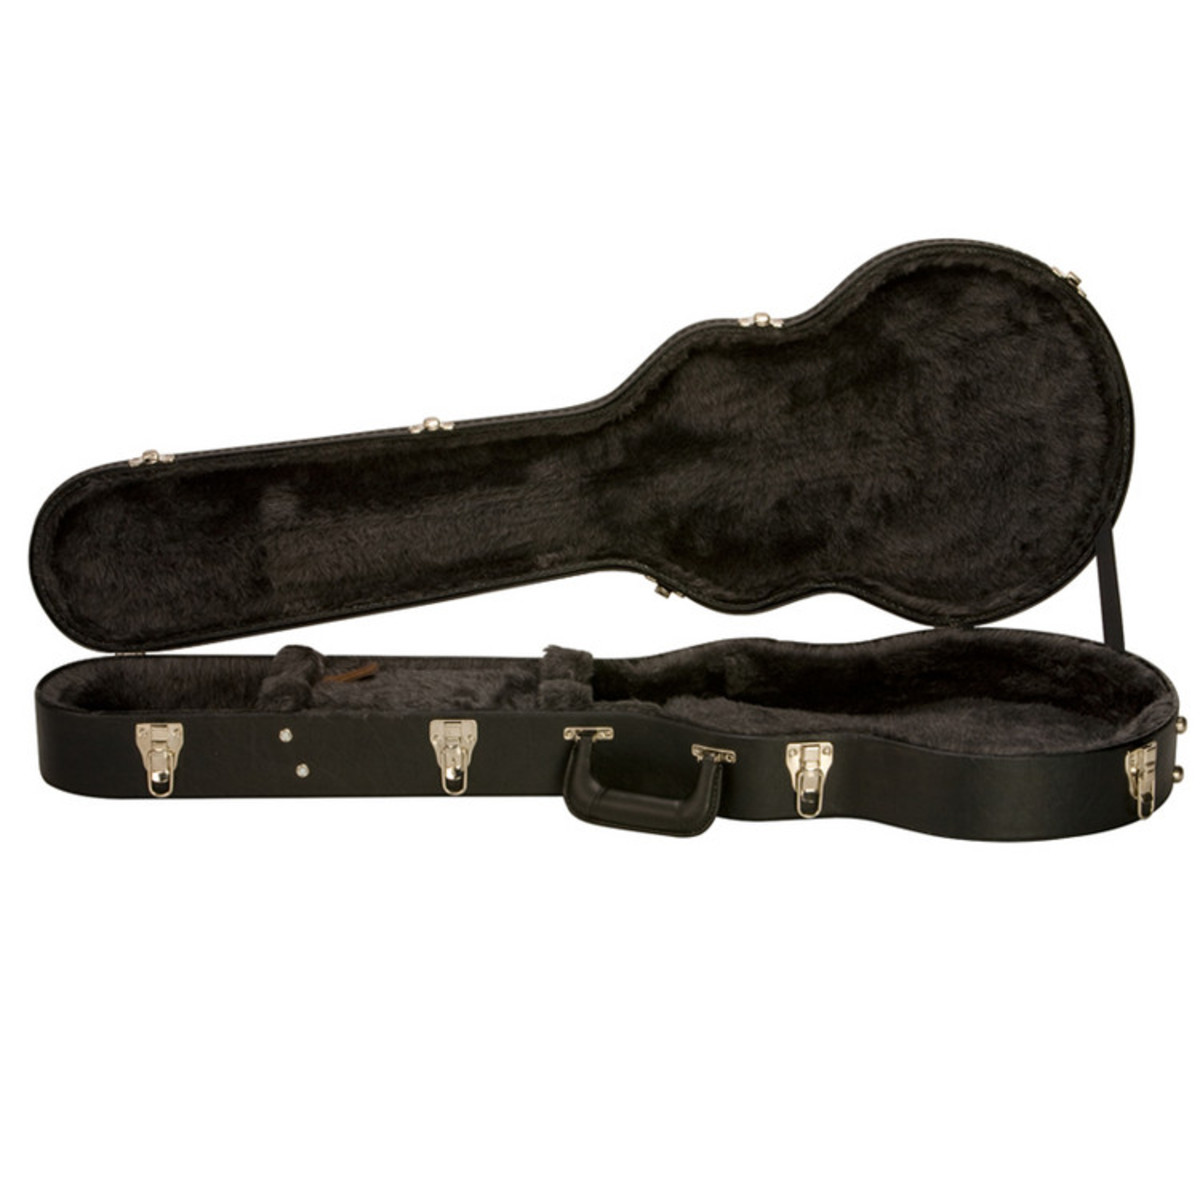 gibson les paul hard shell guitar case at gear4music. Black Bedroom Furniture Sets. Home Design Ideas